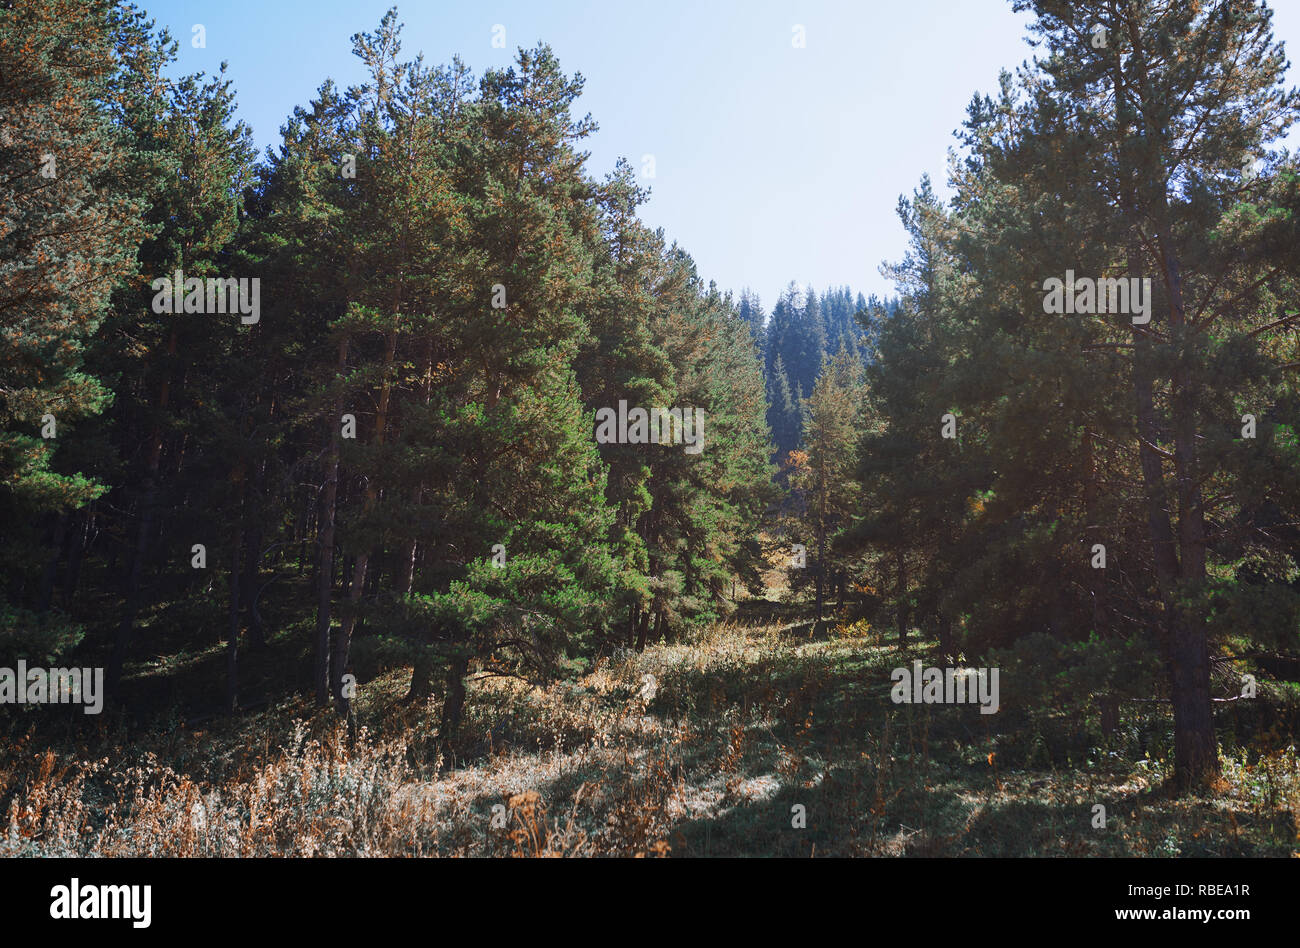 Pine trees in mountain forest - Stock Image